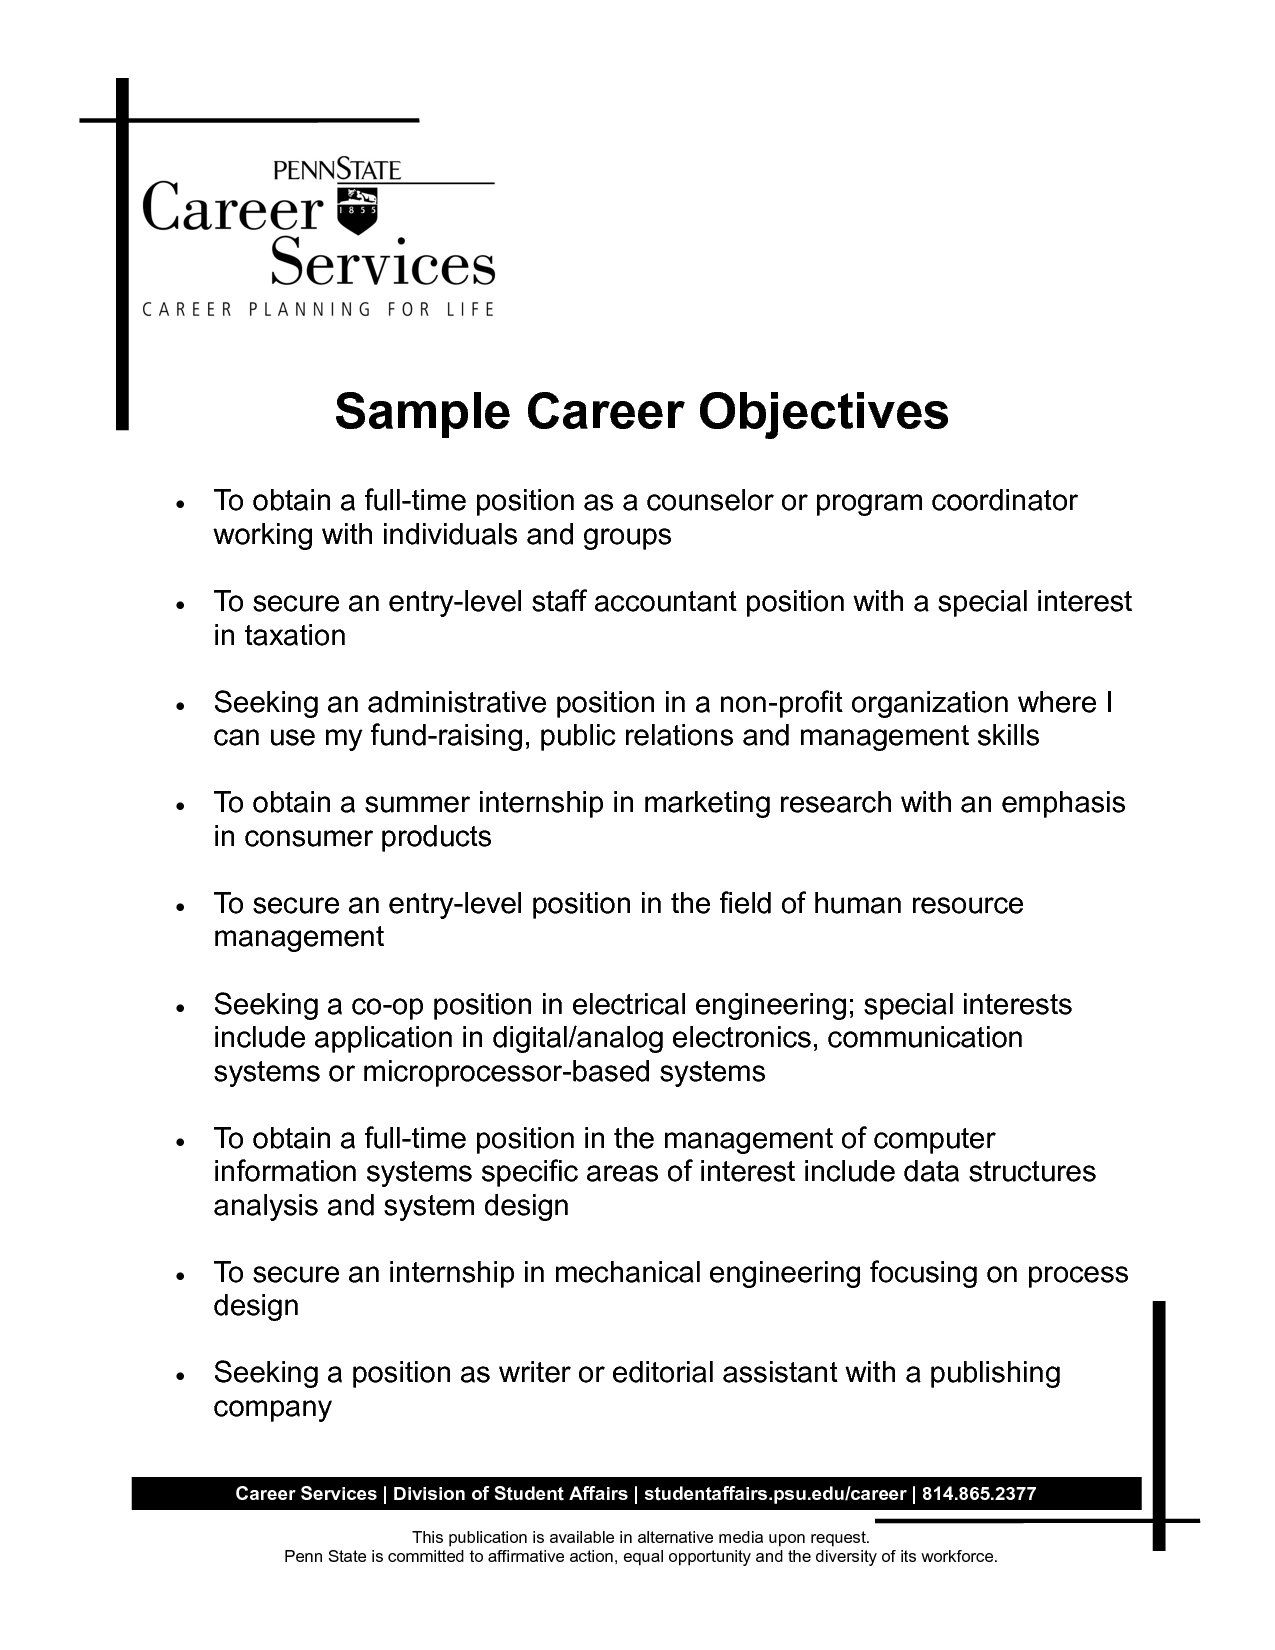 How To Write A Resume Objective For A Teaching Position How To Write Career Objective With Sample